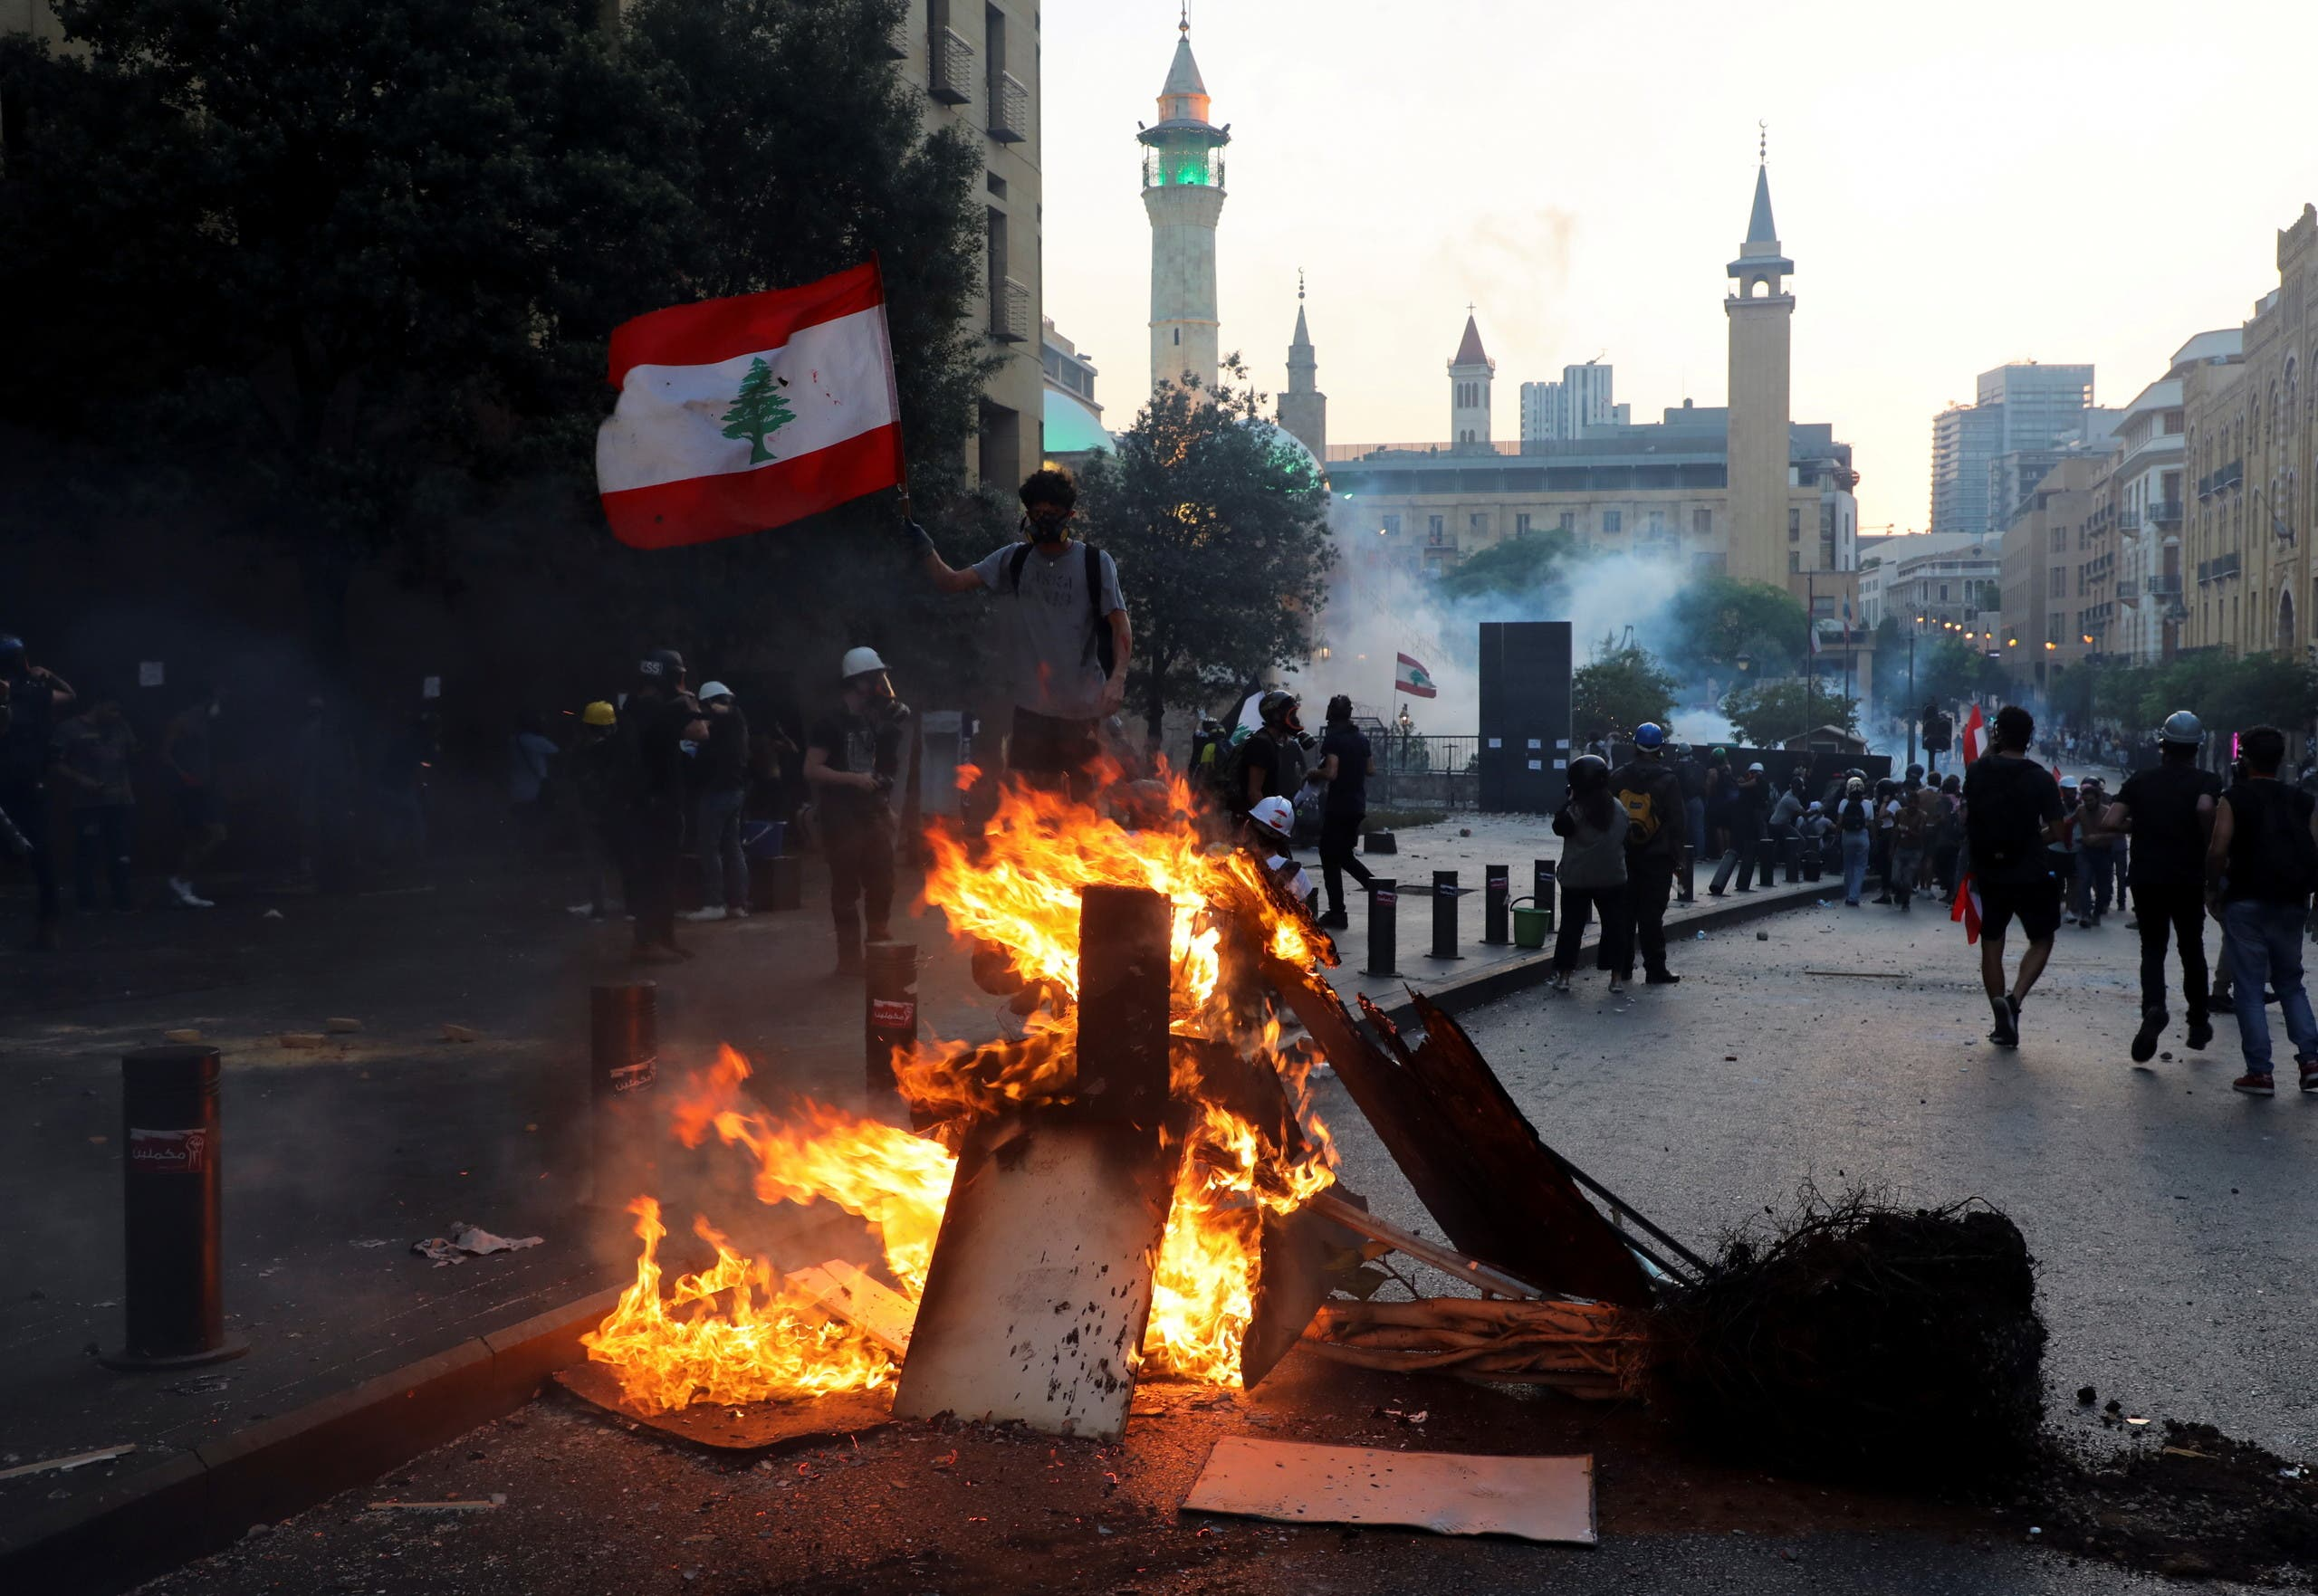 From the protests today in Beirut